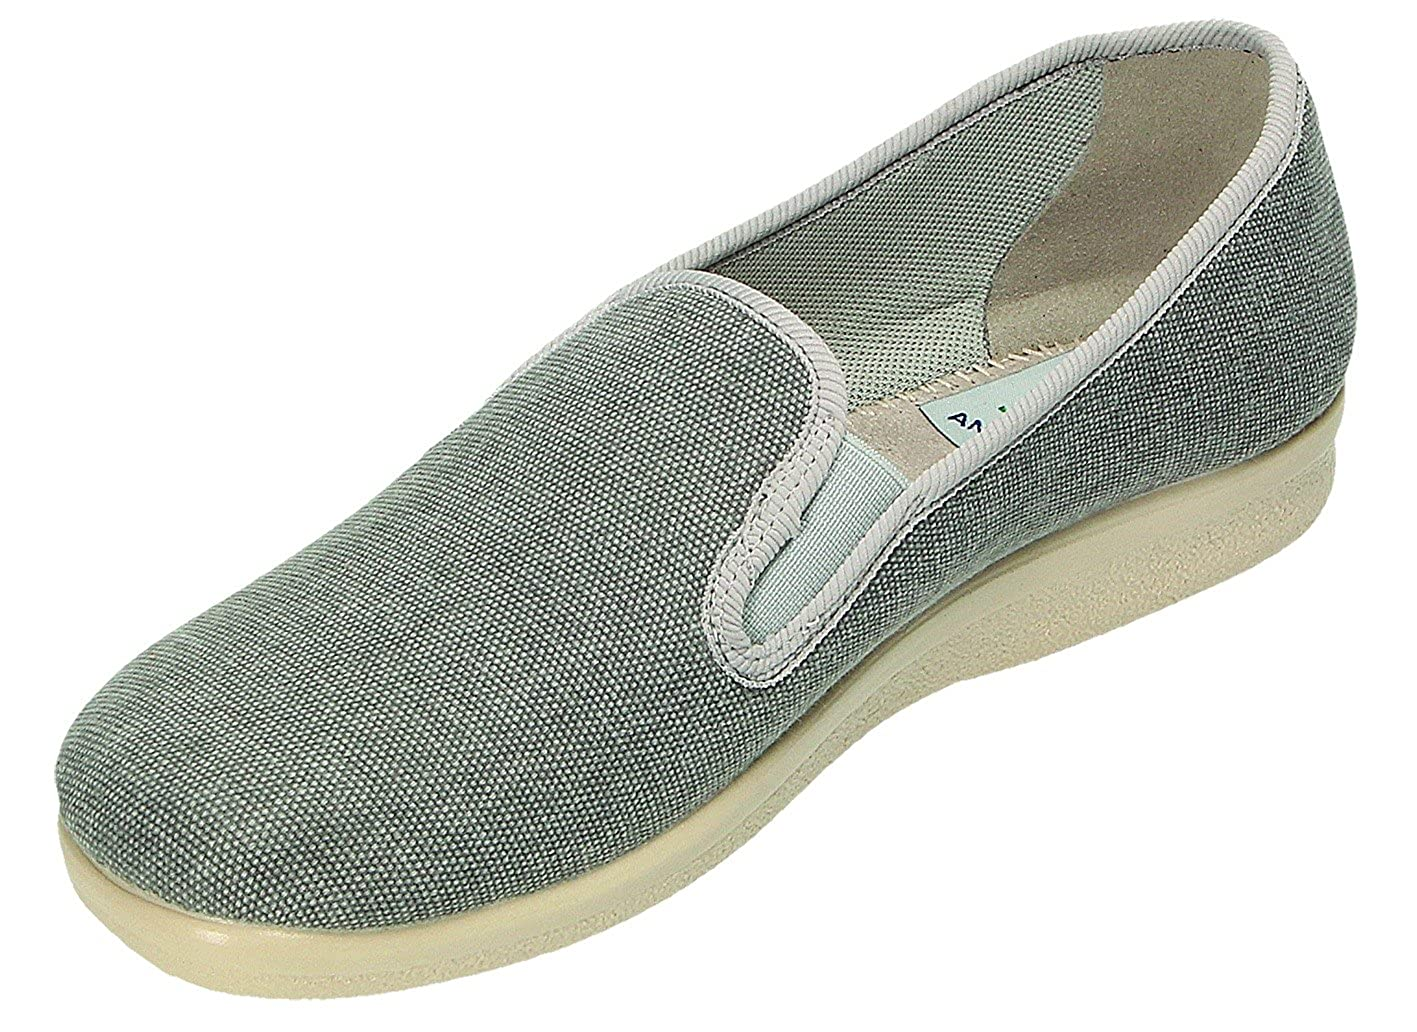 567a4c52f5bf Fly Flot Men s Slippers Grey Grey Grey Size  9 UK  Amazon.co.uk  Shoes    Bags